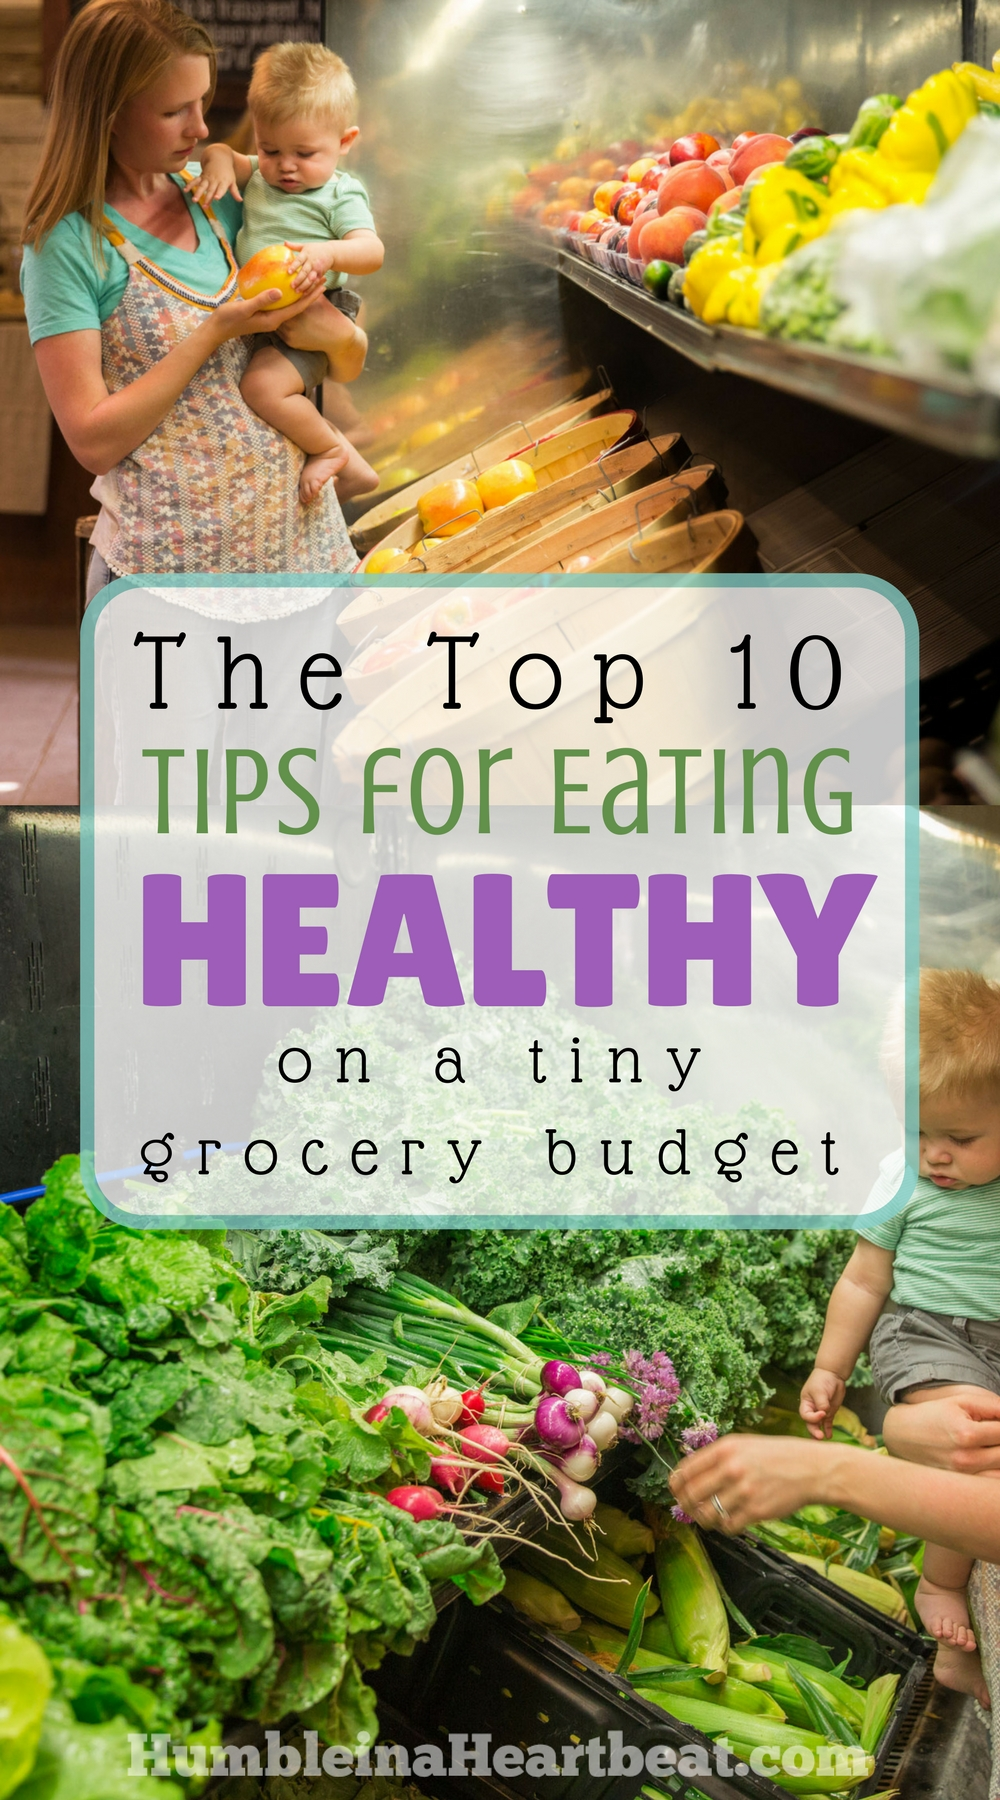 Tired of overspending on groceries? You don't have to break the bank to feed your family well. Check out these top tips for affordable healthy eating!